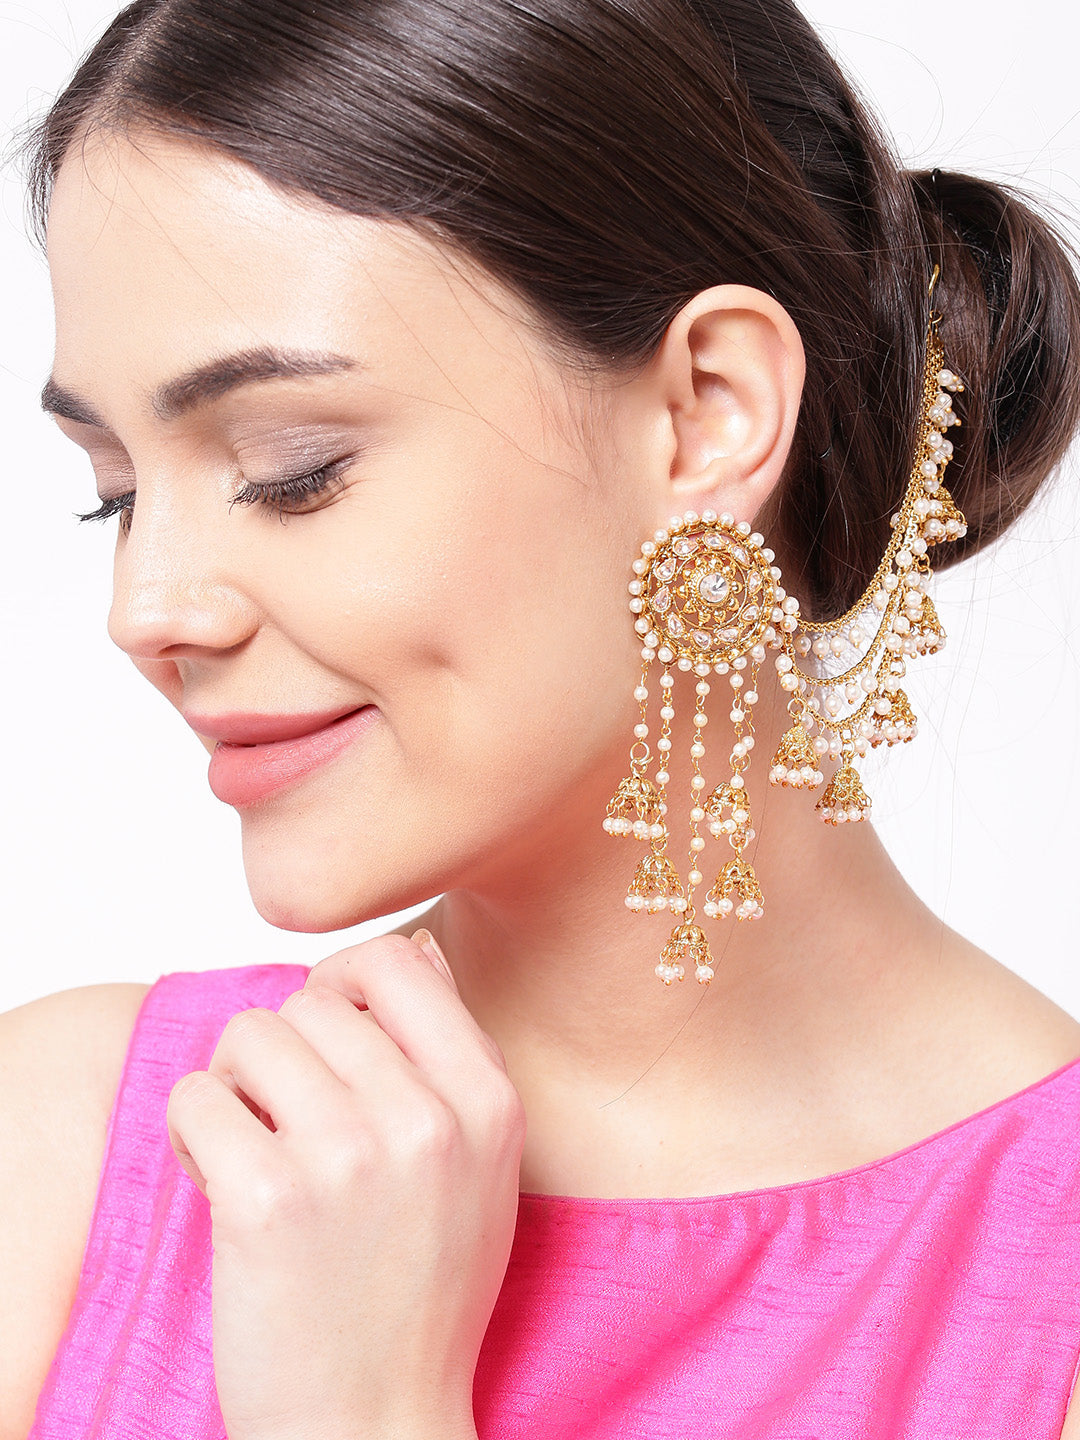 Off-White 18K Gold-Plated Beaded Handcrafted Jhumkas with Ear Chain - Jhumka Earring Chain Jewellery Set